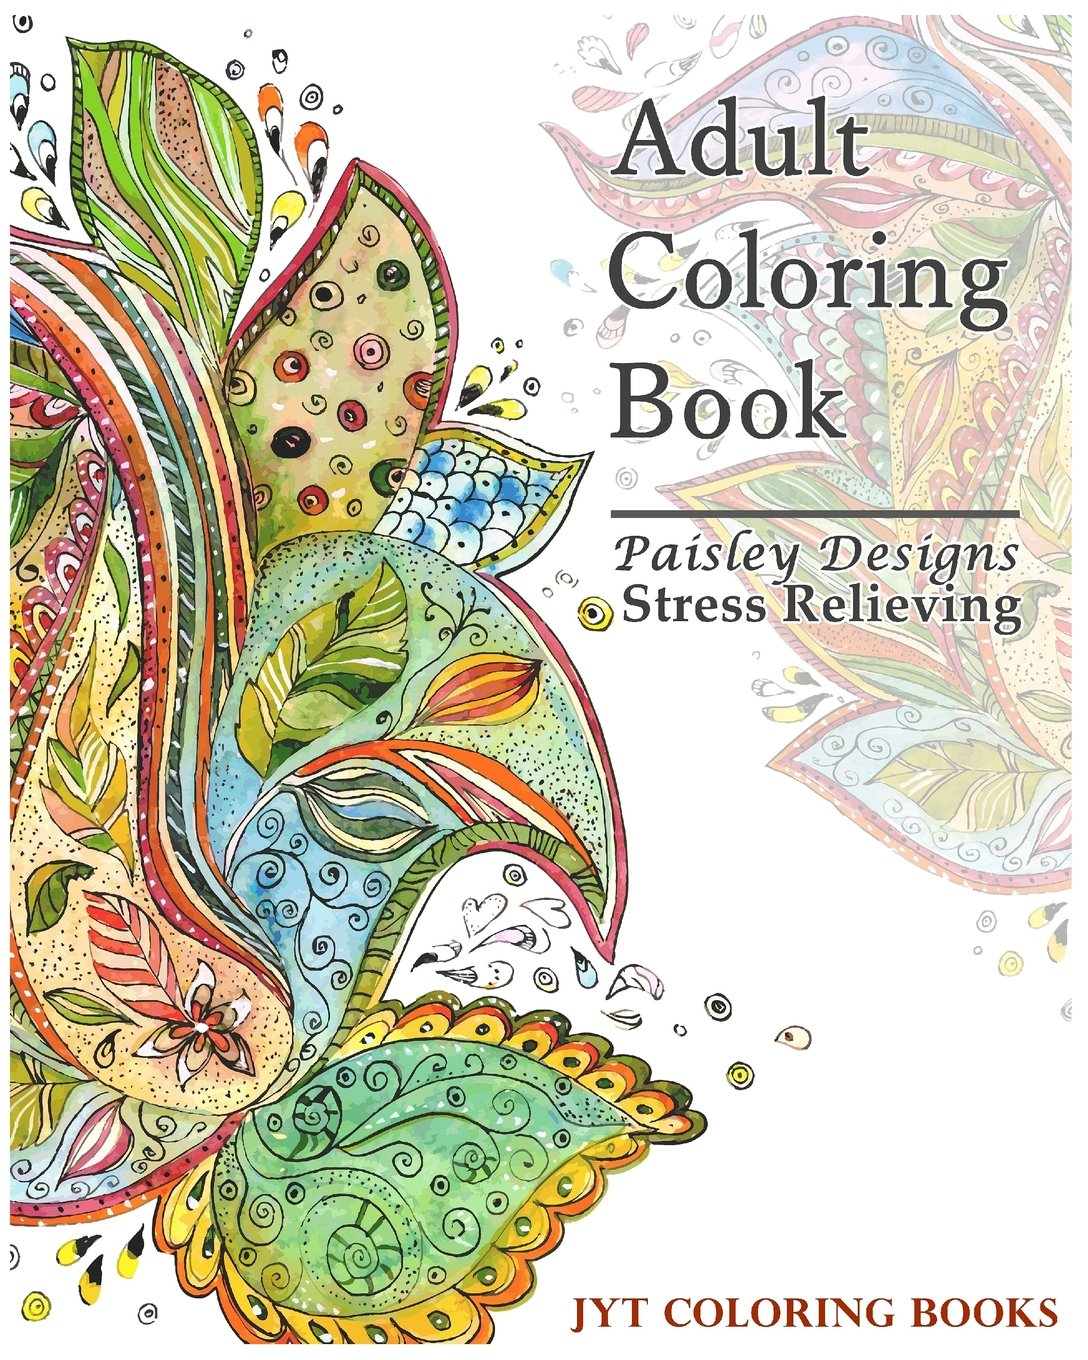 Amazon.com: Paisley Designs Coloring Book: Stress Relieving (Adult ...